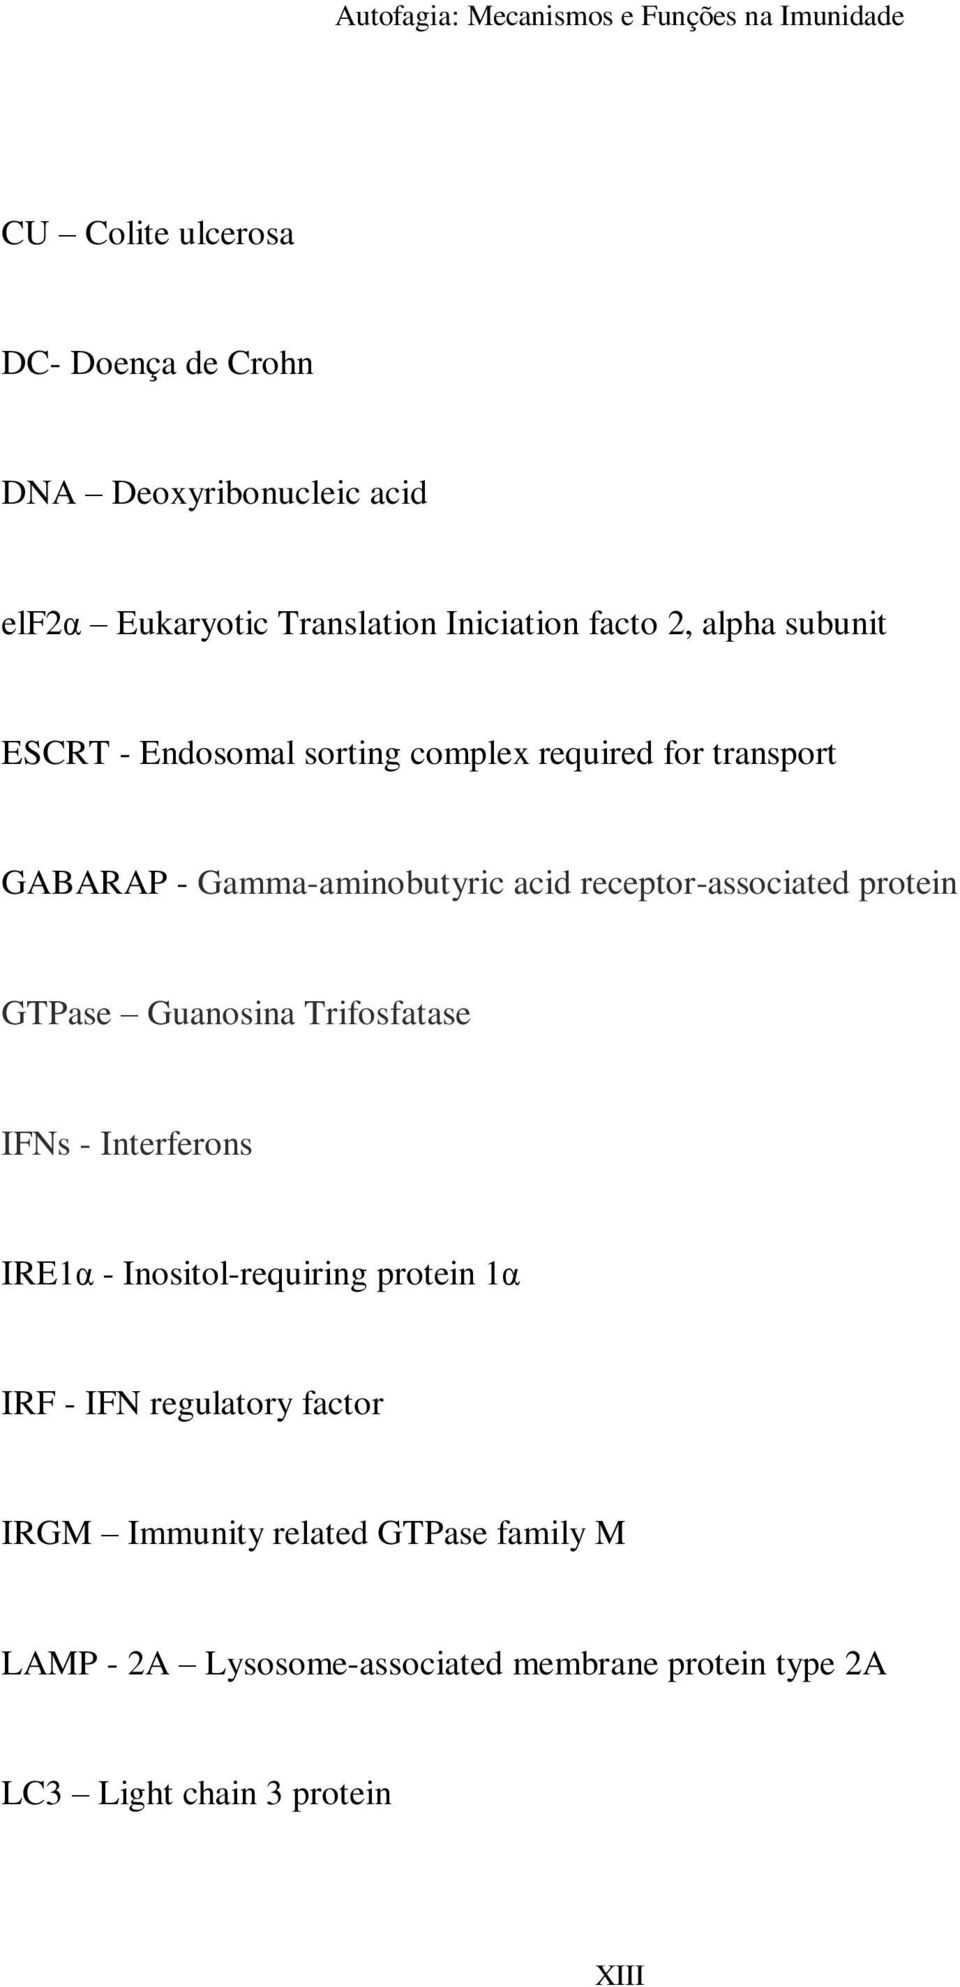 protein GTPase Guanosina Trifosfatase IFNs - Interferons IRE1α - Inositol-requiring protein 1α IRF - IFN regulatory